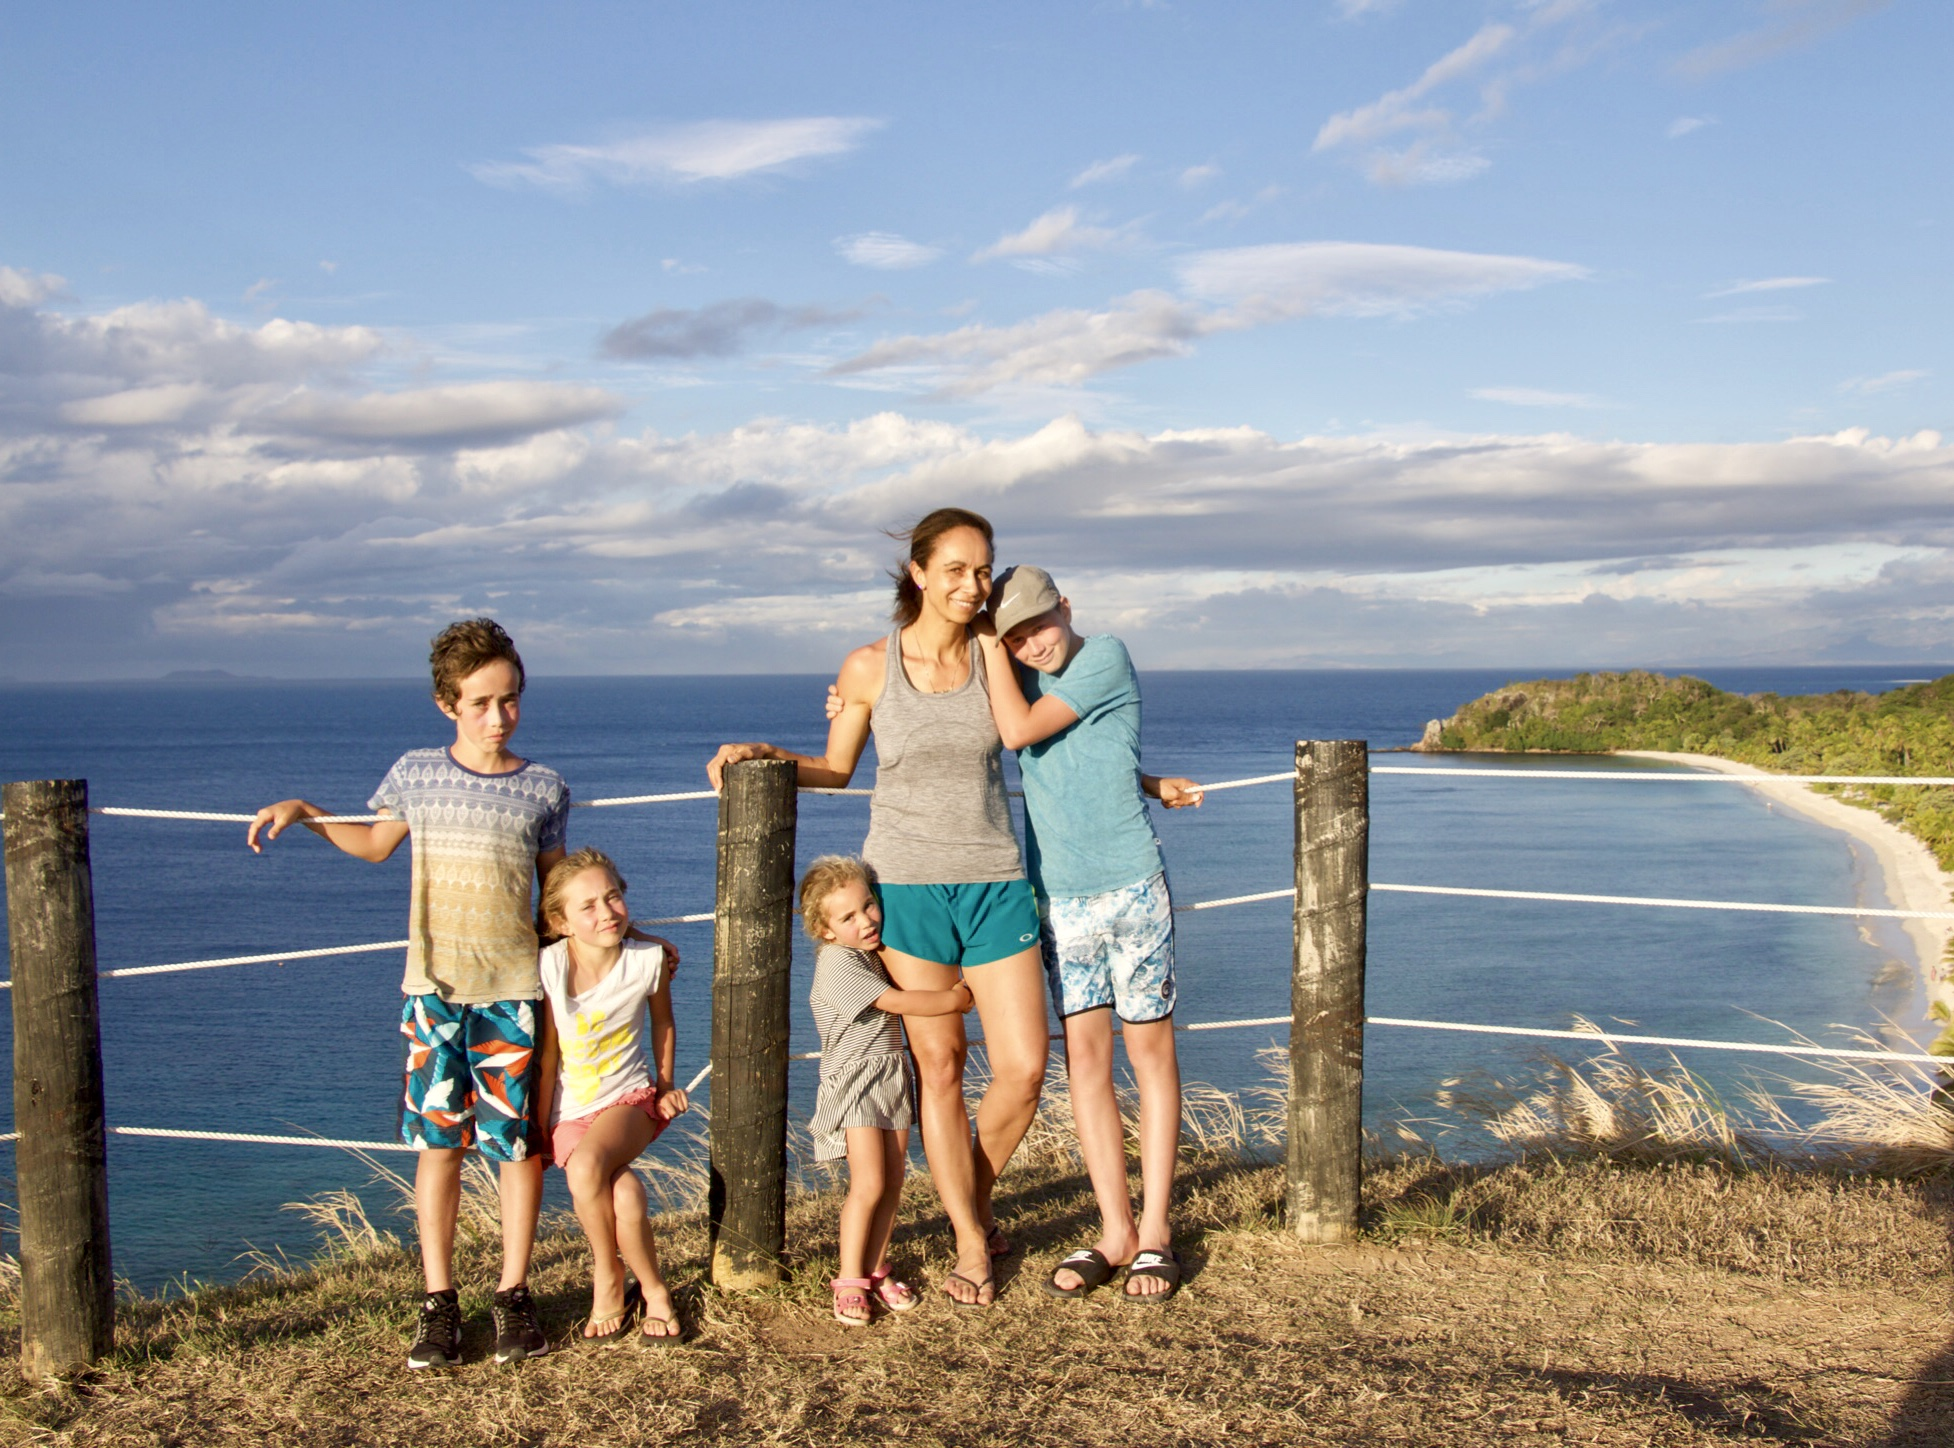 Lyzadie, on holiday, travelling the world with her children.